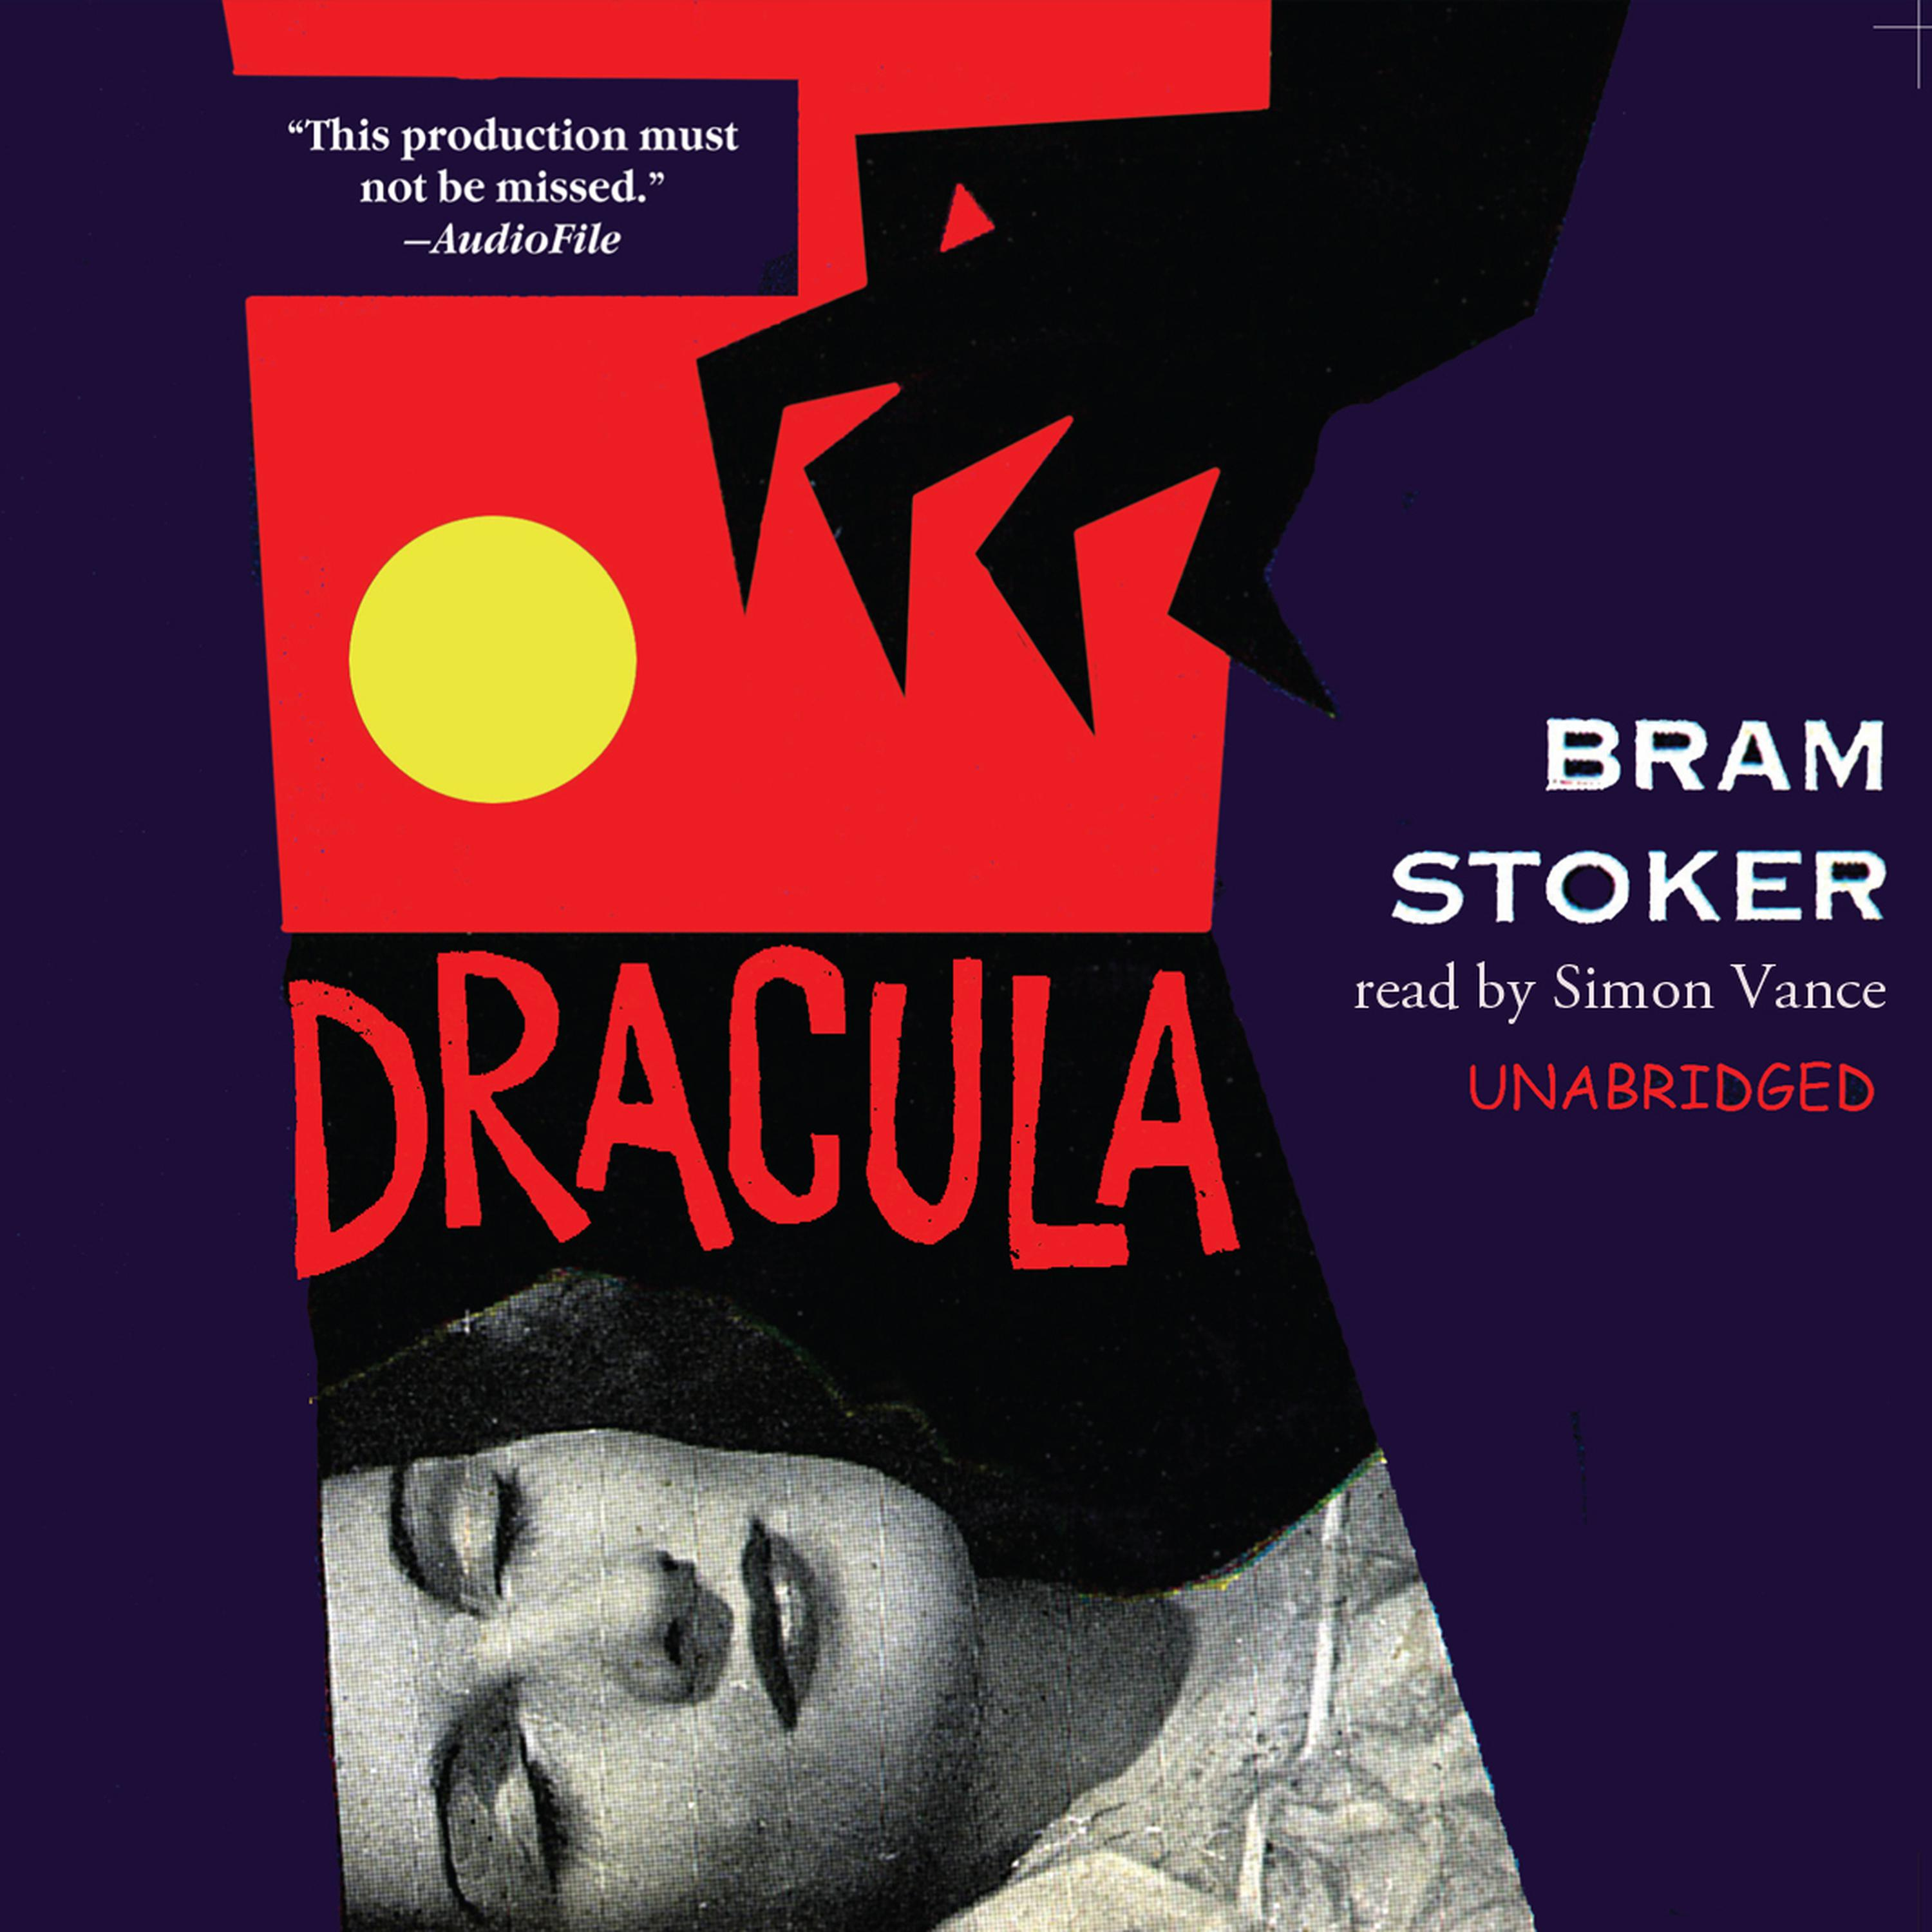 Dracula Audiobook Listen Instantly